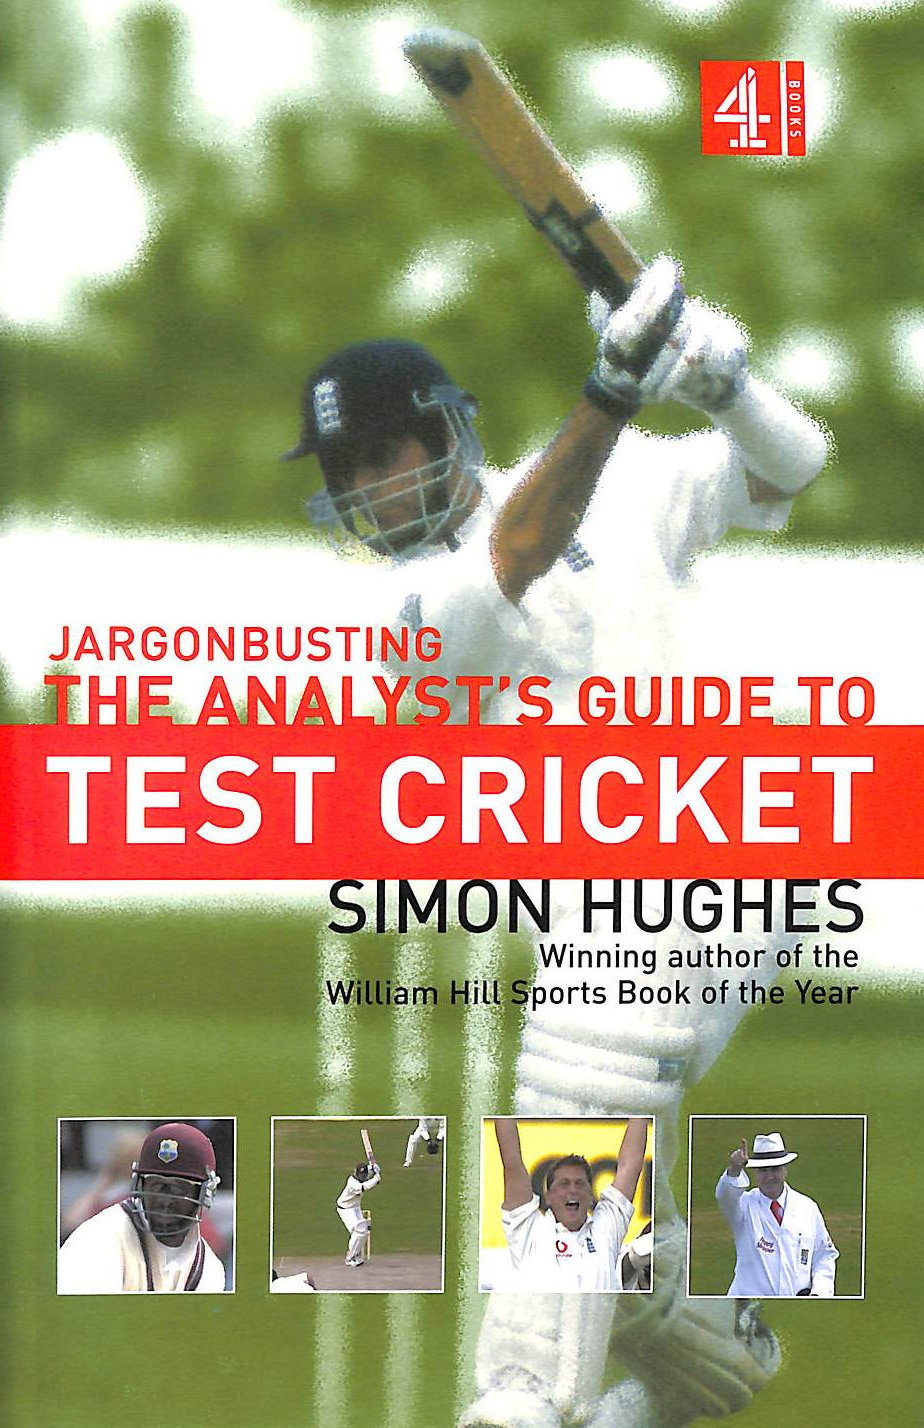 Image for Jargonbusting: An Analyst's Guide To Test Cricket: The Analyst's Guide To Test Cricket